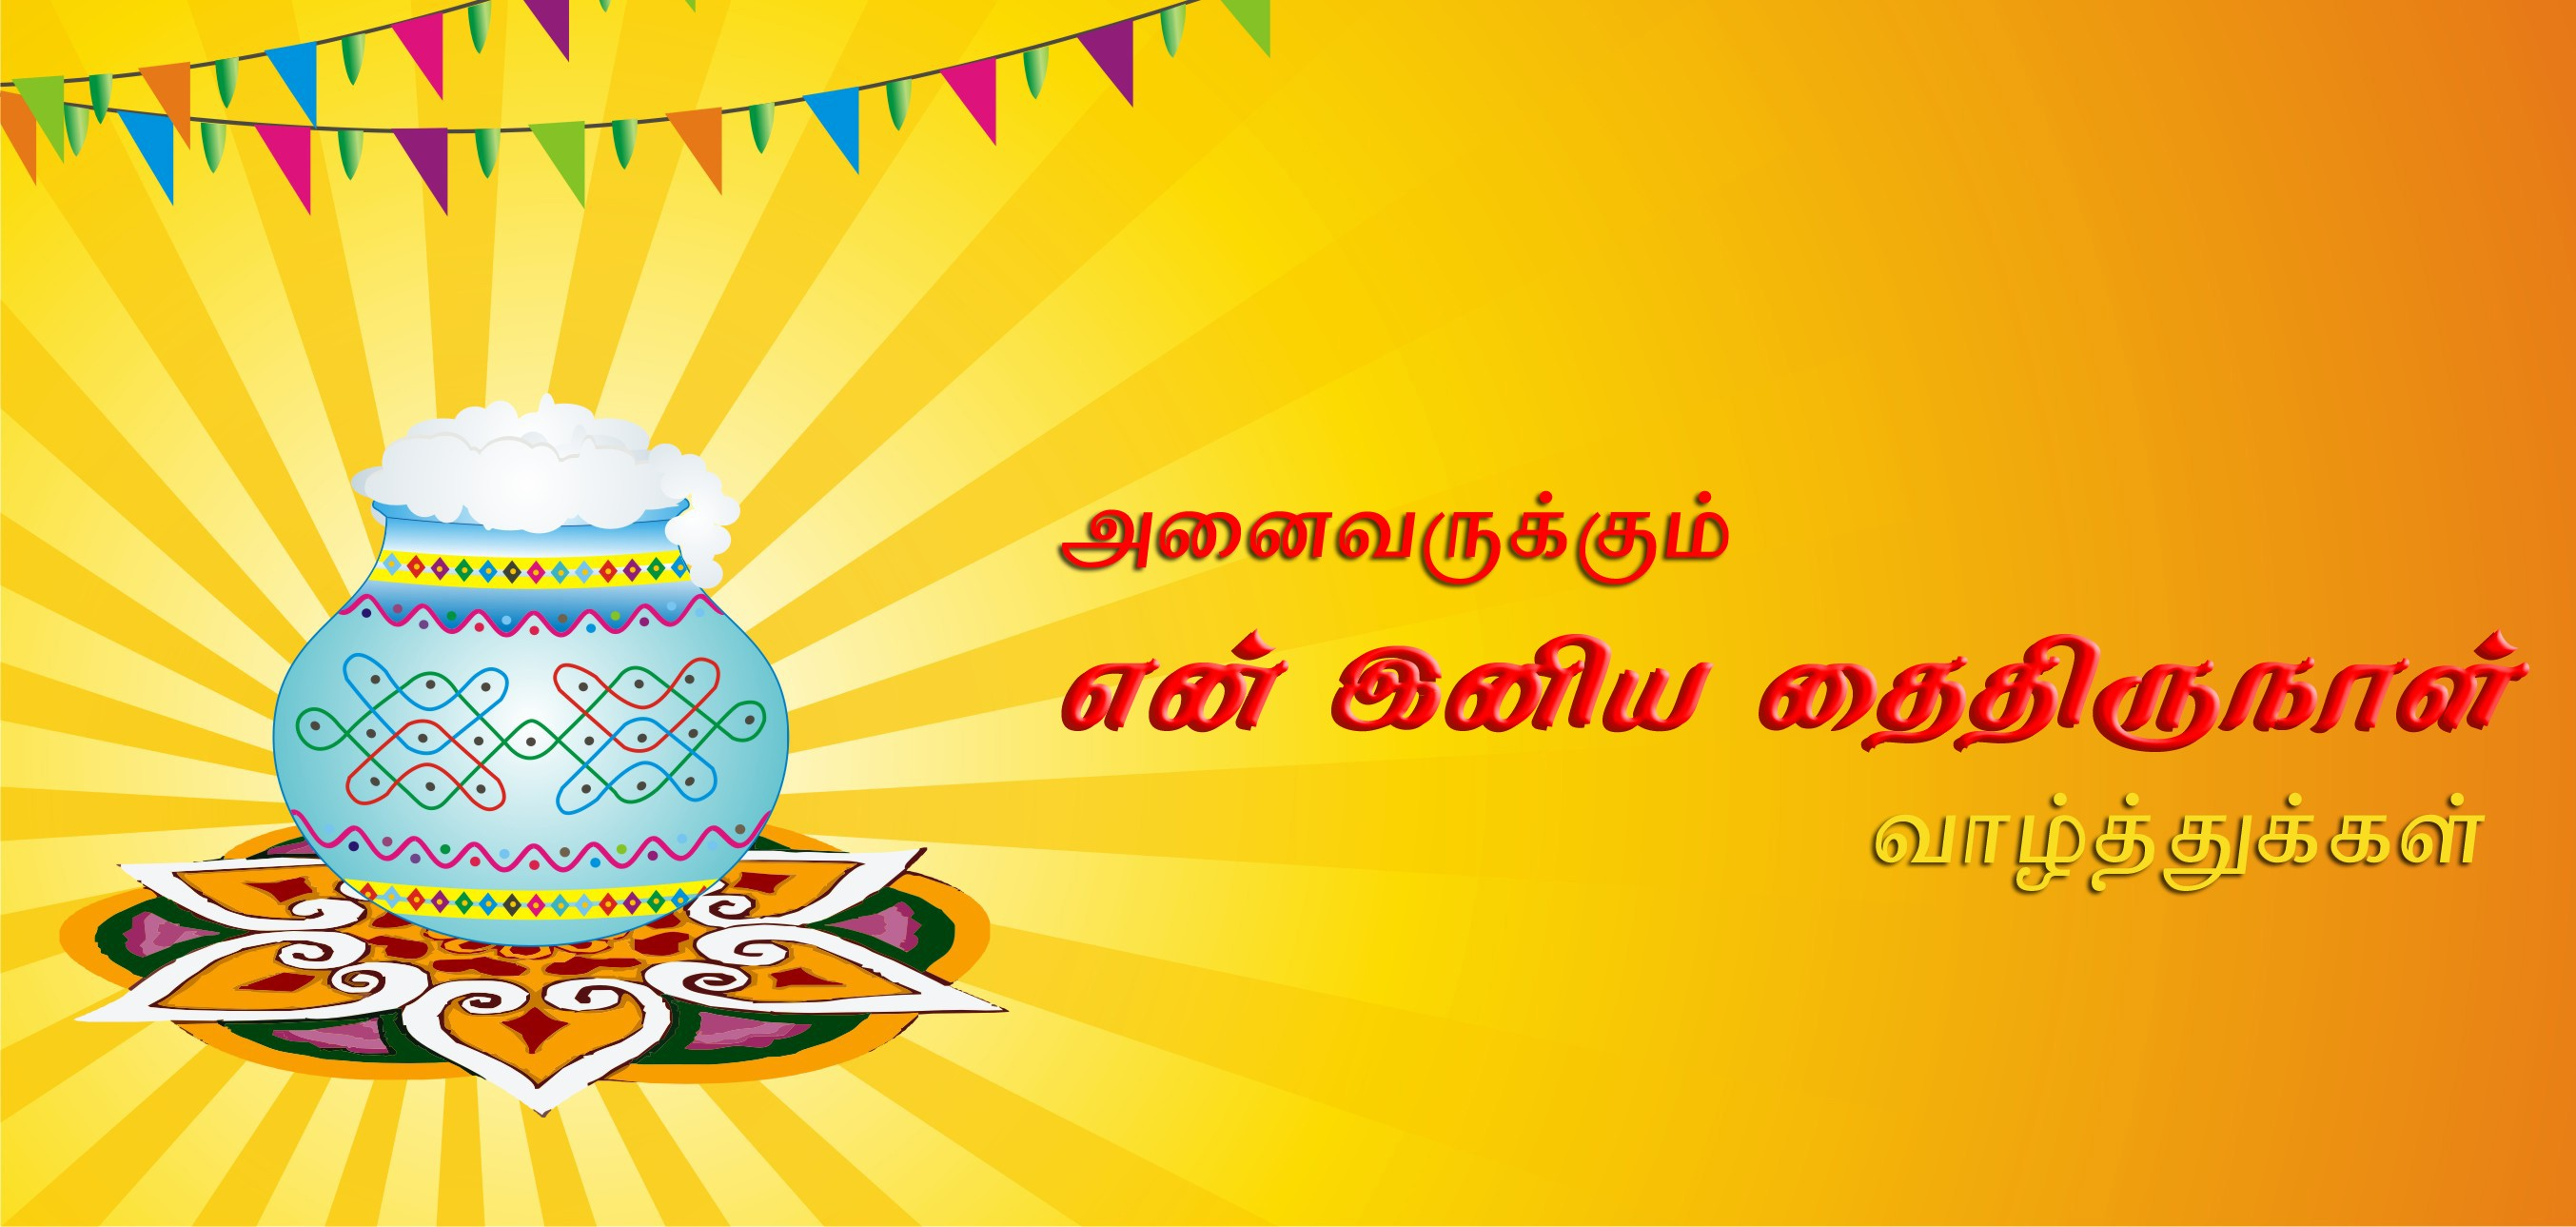 Tamil Pongal Clipart.